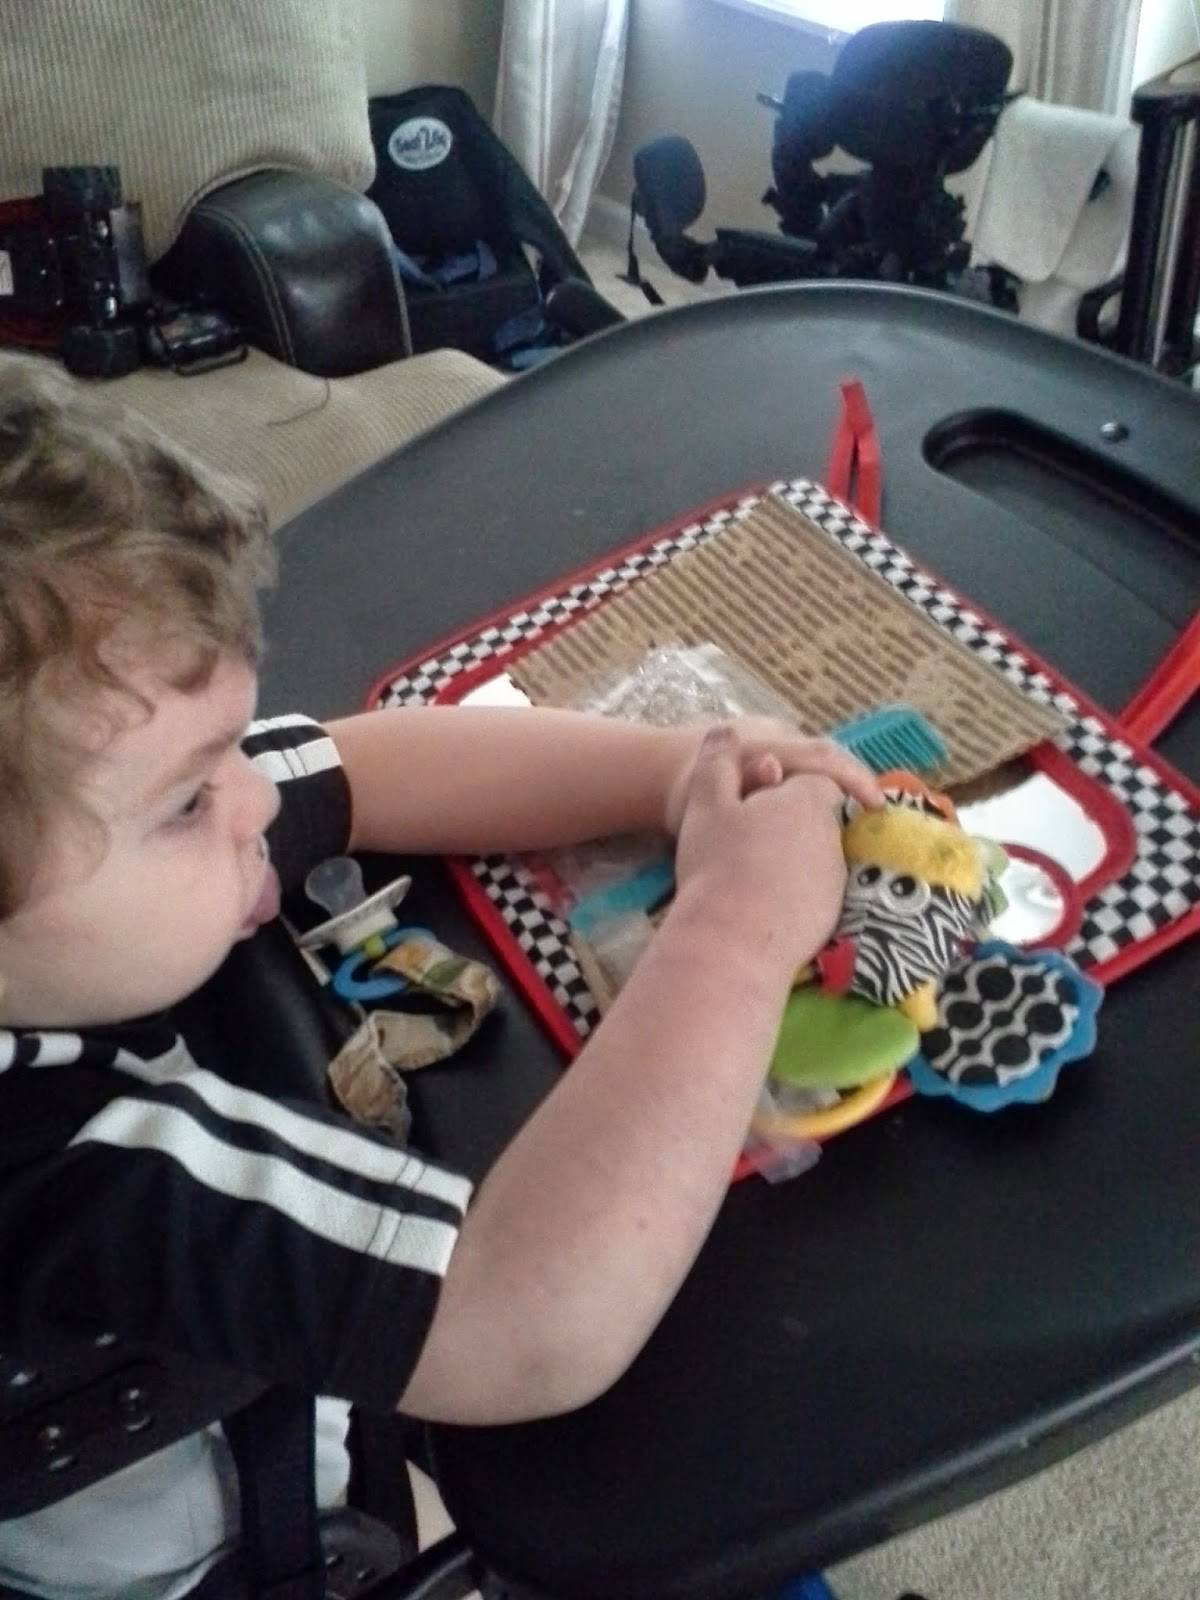 sensory defensiveness deafblind child exploring sounds on a scratchboard